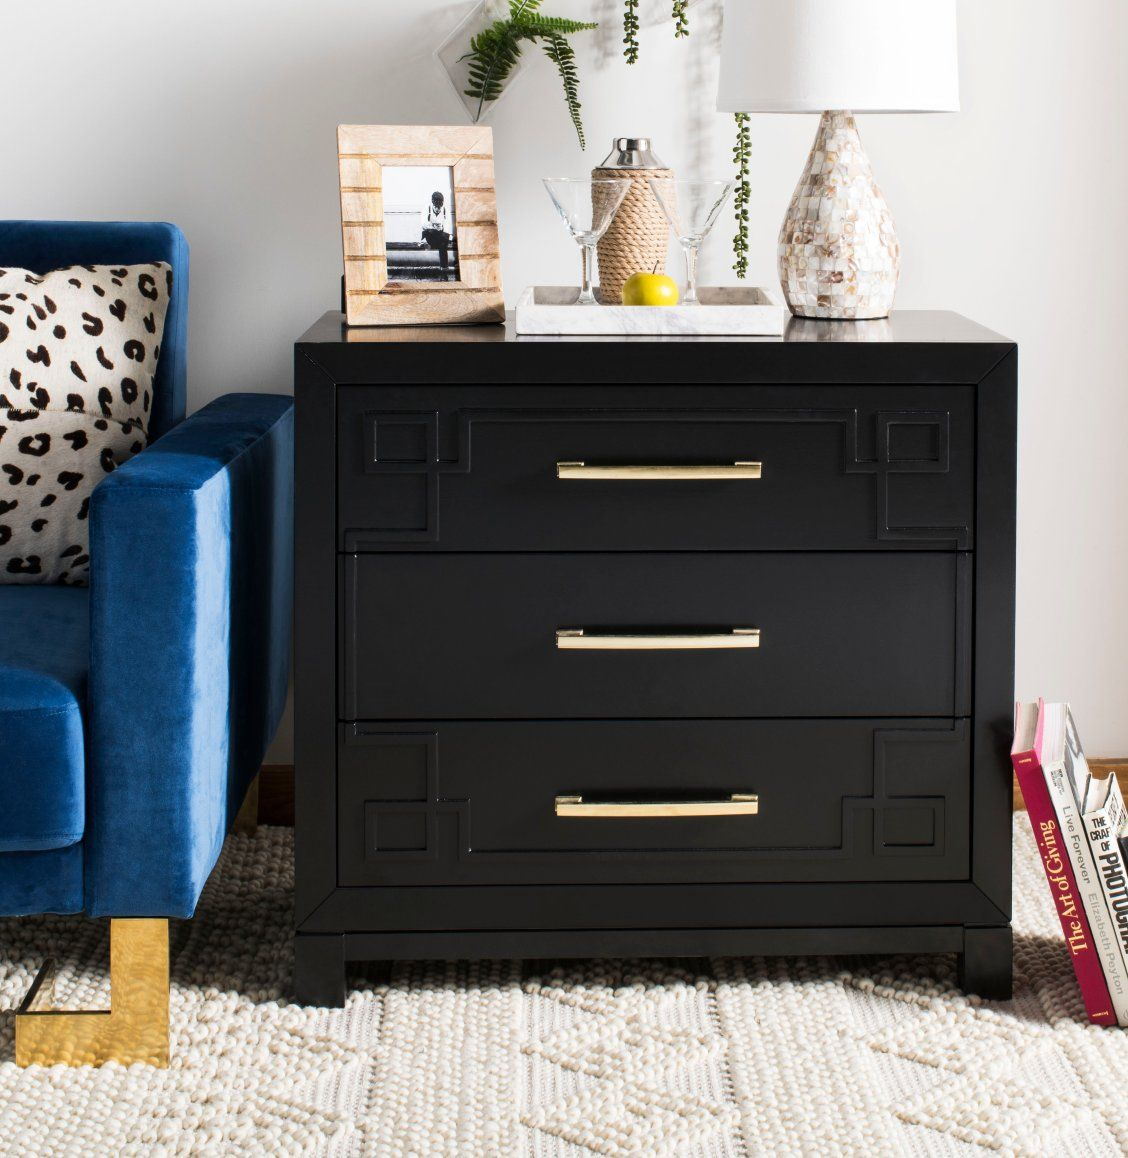 Inspired By Art Deco Style This Vibrant 3 Drawer Chest Makes A